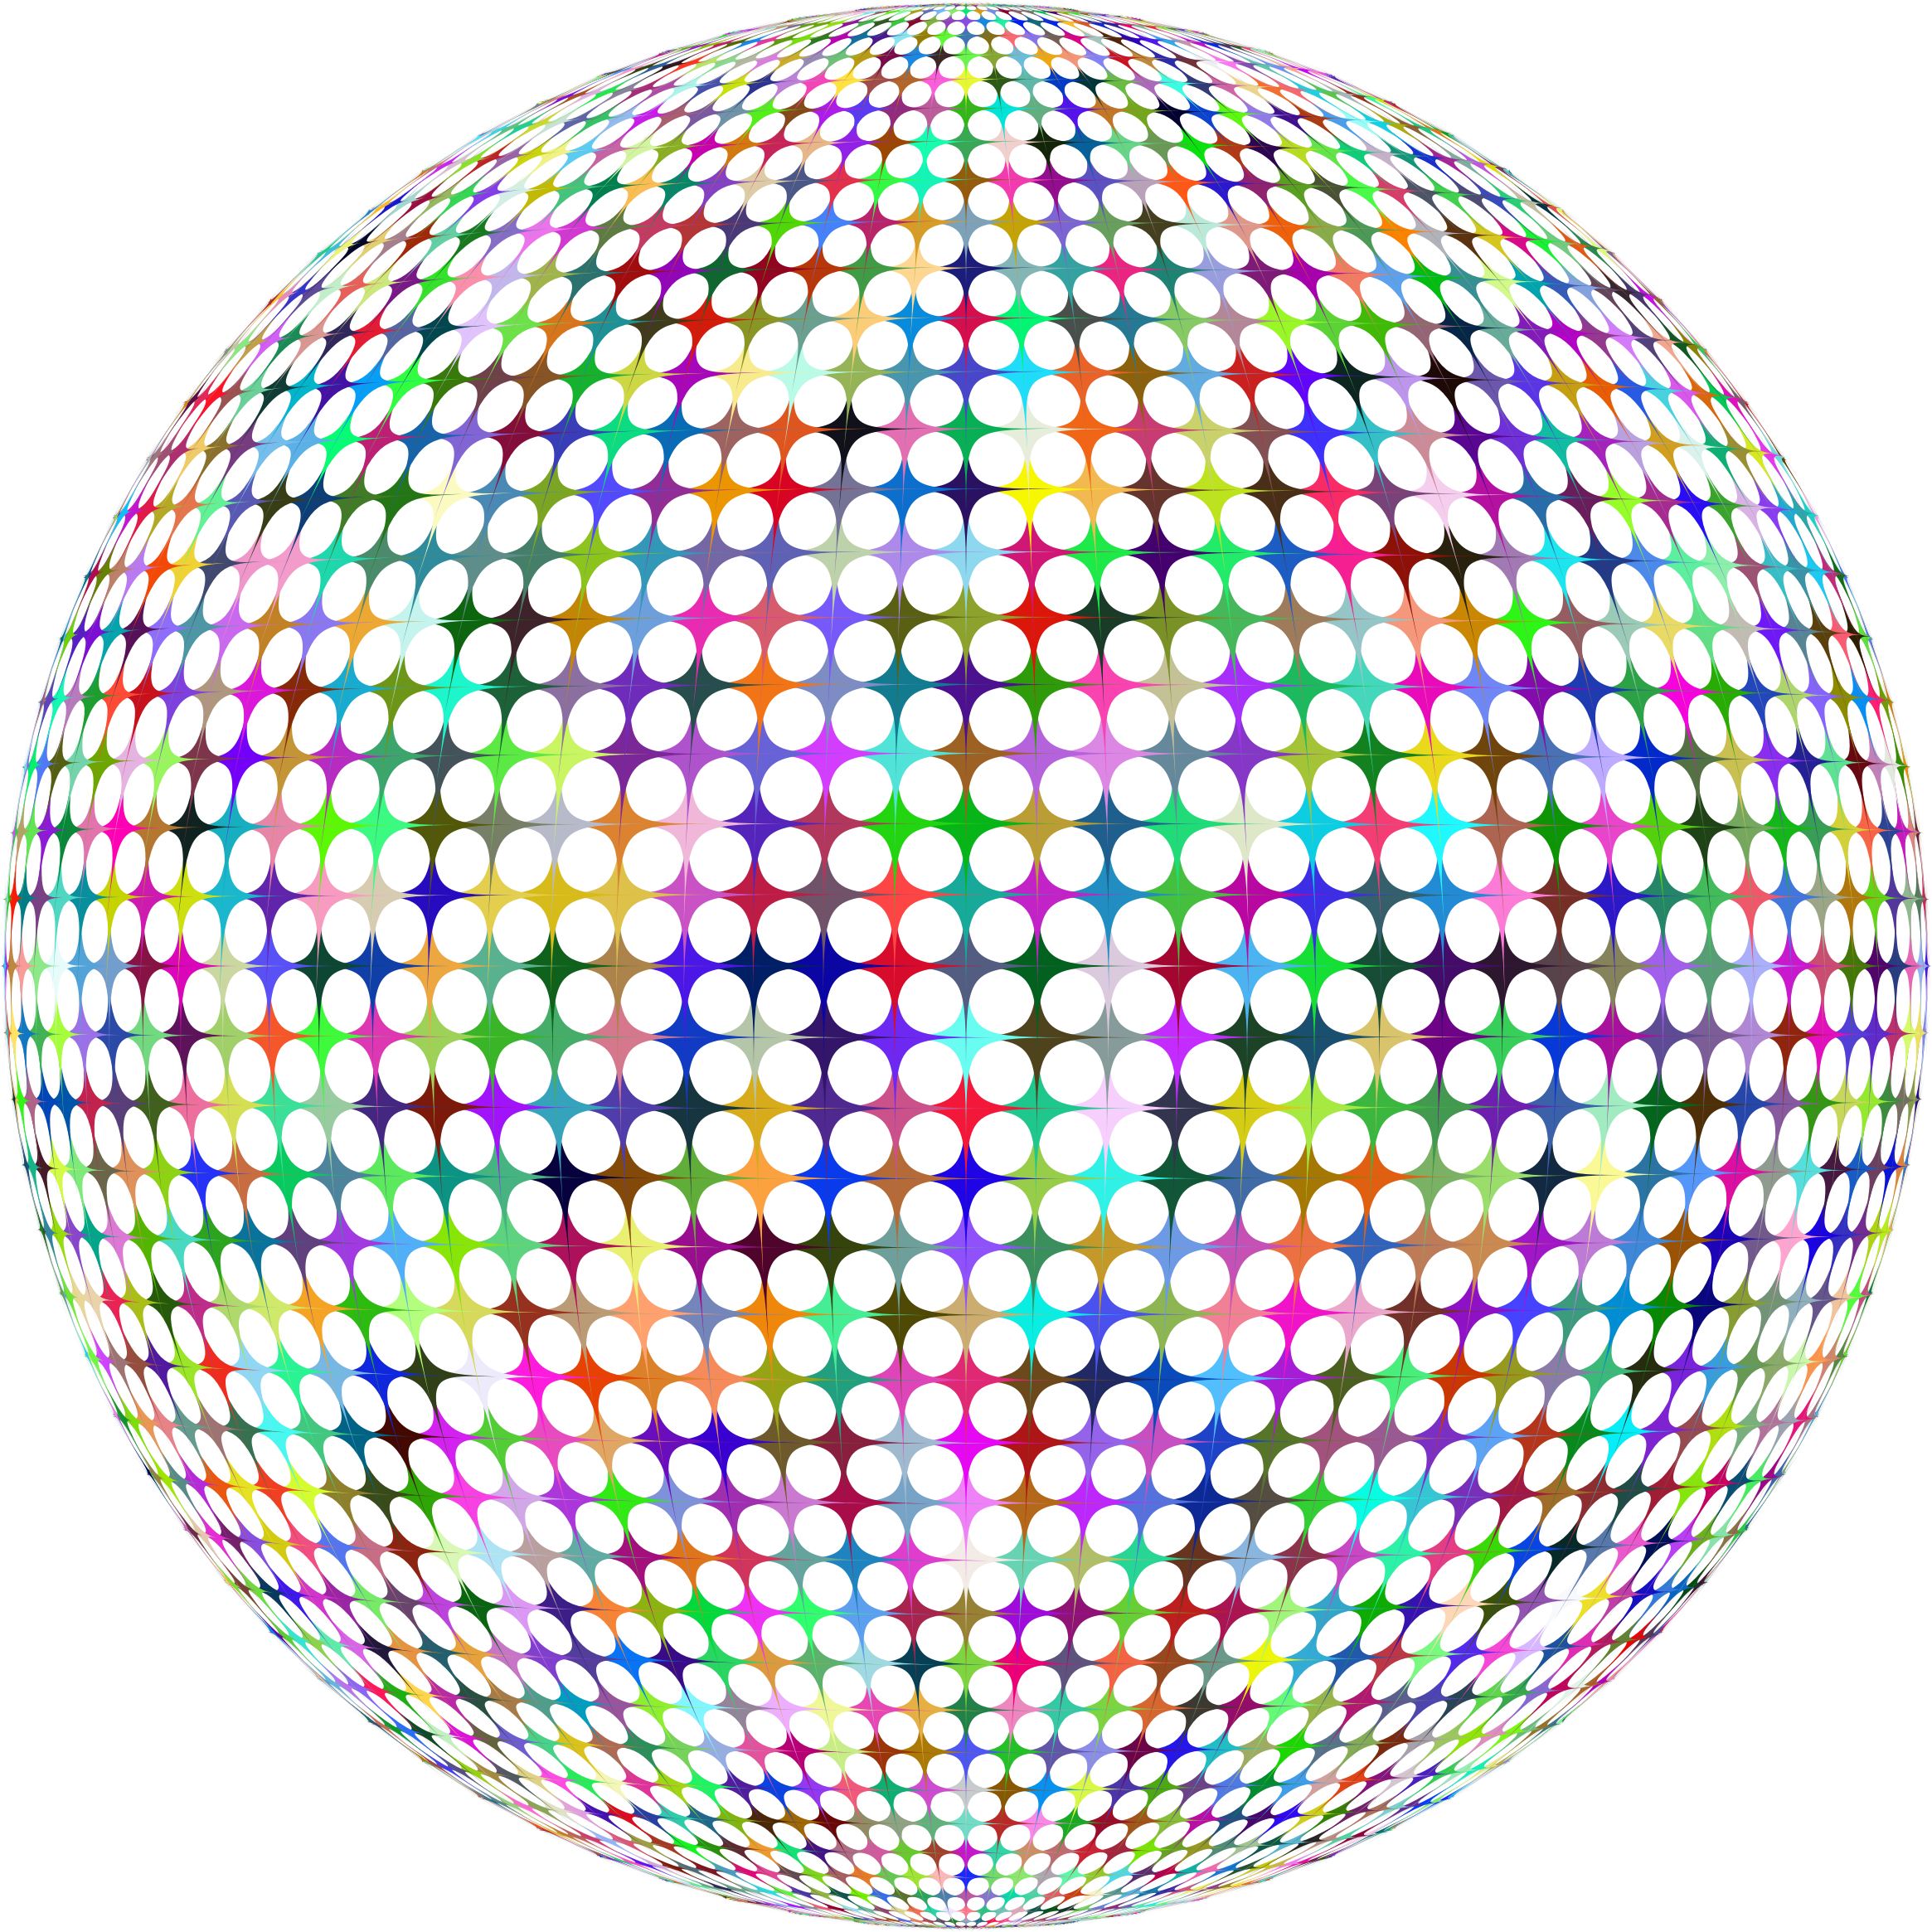 Prismatic Abstract Sphere by GDJ